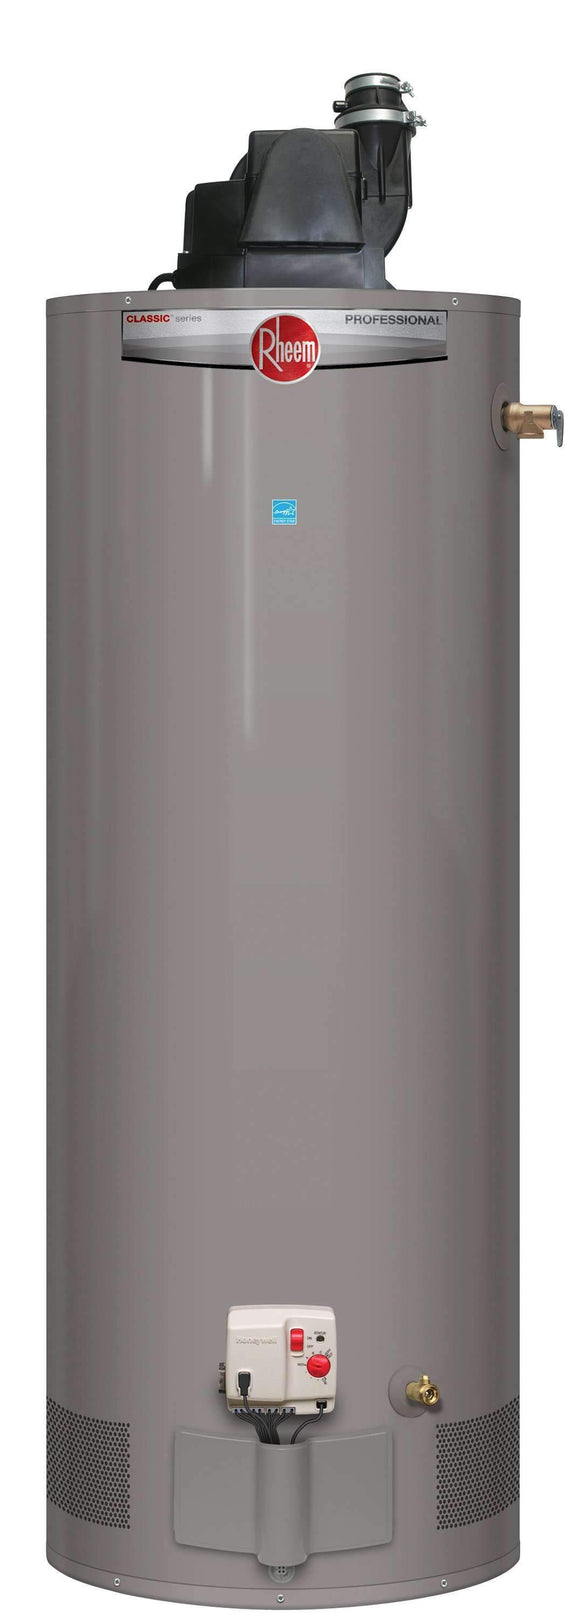 RHEEM PROG40-40N RH67 PV Professional Classic 40 Gallon Tall 40,000 BTU Natural Gas Residential Power Vent Water Heater <font color=red>(DETROIT, MI AREA LOCAL PICK-UP ONLY)</font> - wholesalewaterheater